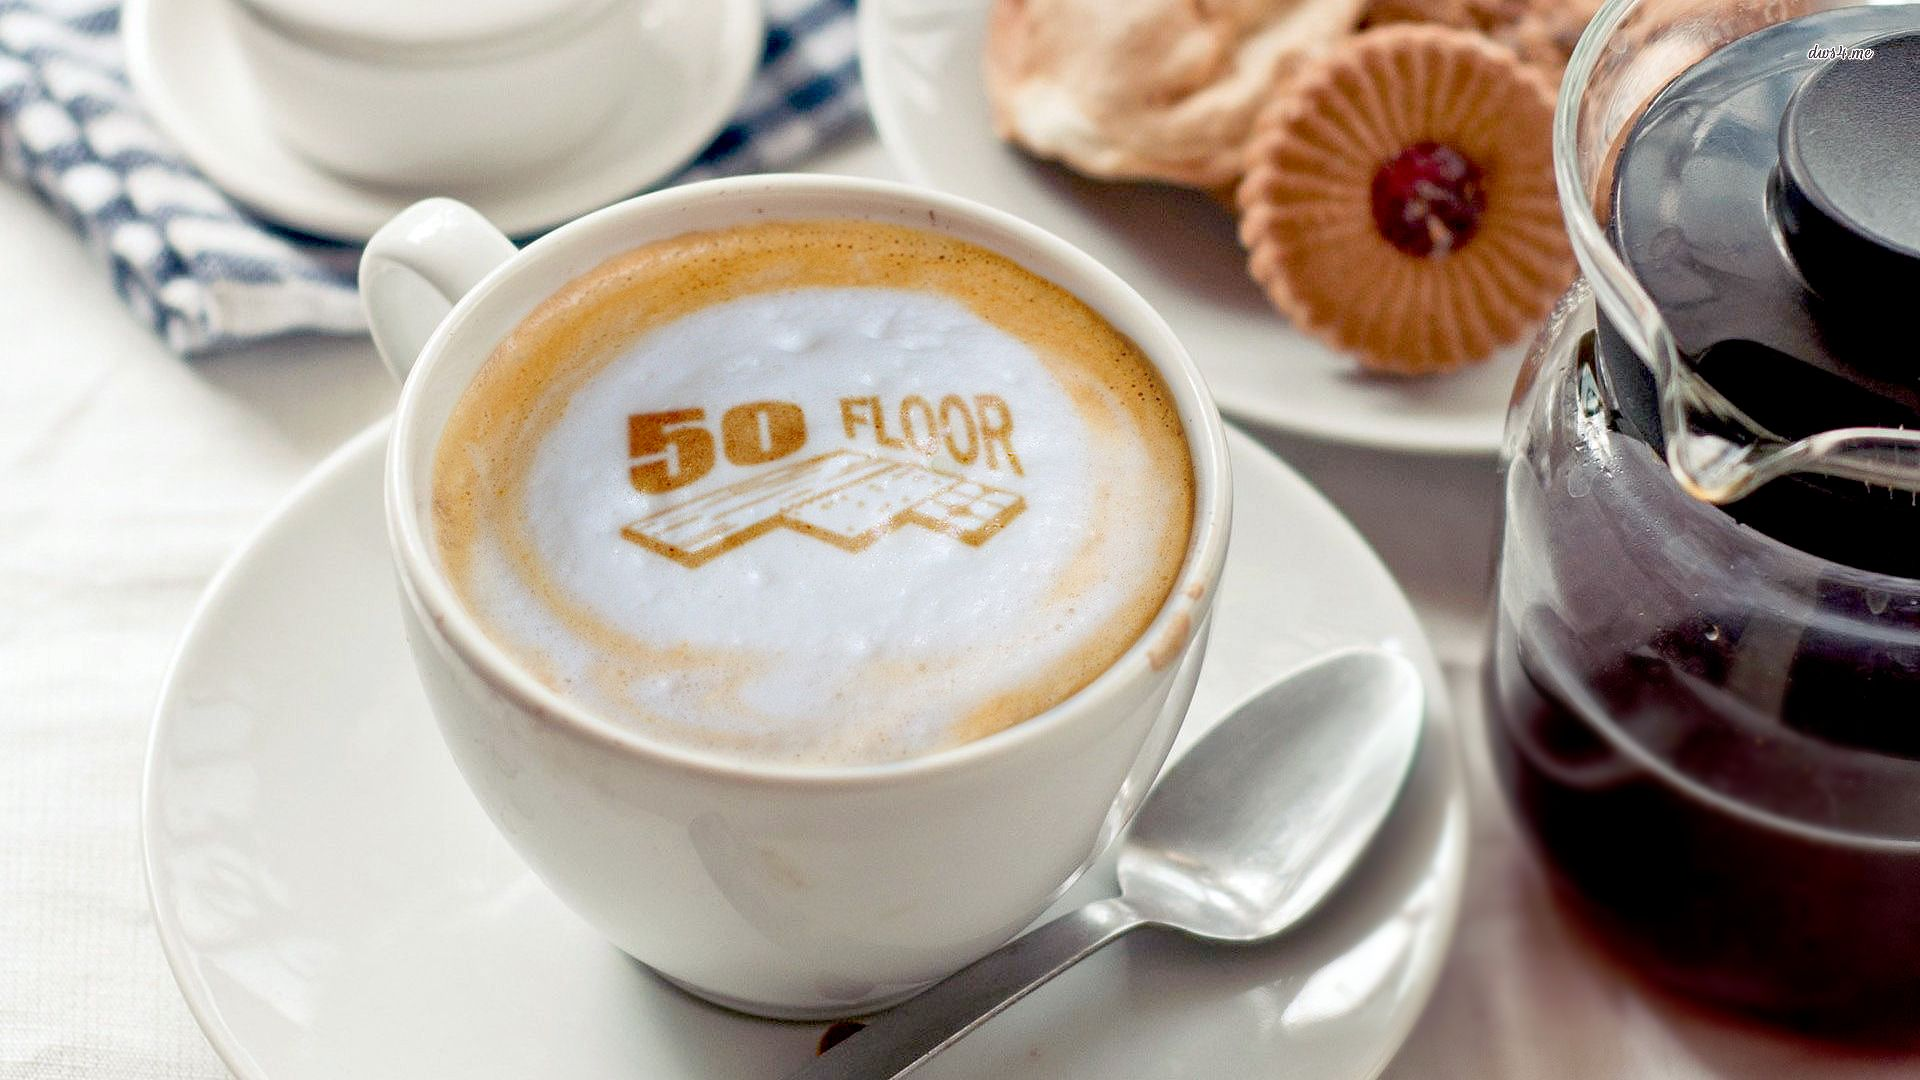 Happy National Coffee Day from your friends at 50 Floor